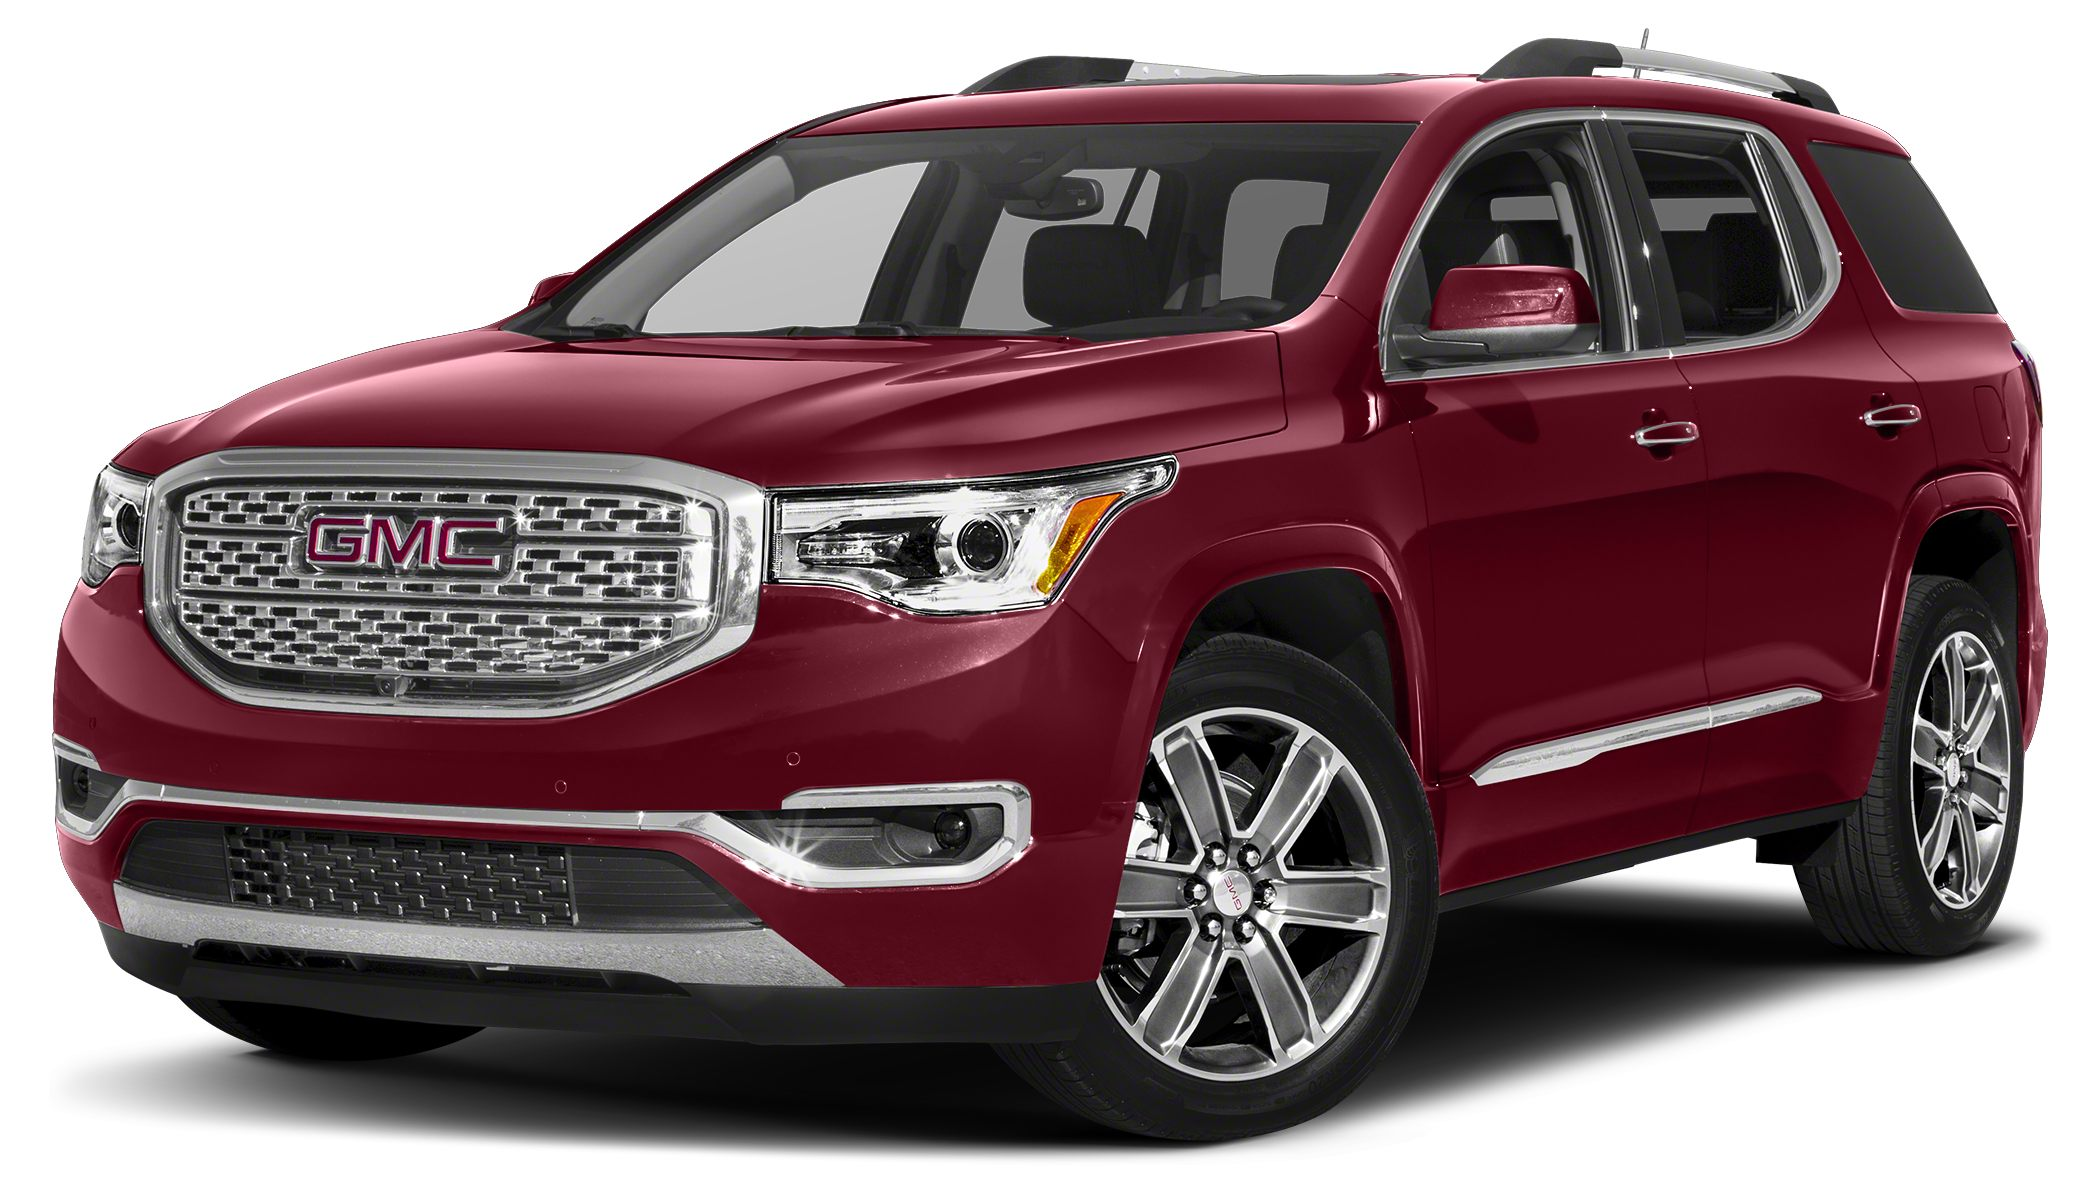 2018 GMC Acadia Denali AWD jet black Leather WARRANTY FOREVER included at NO EXTRA COST See